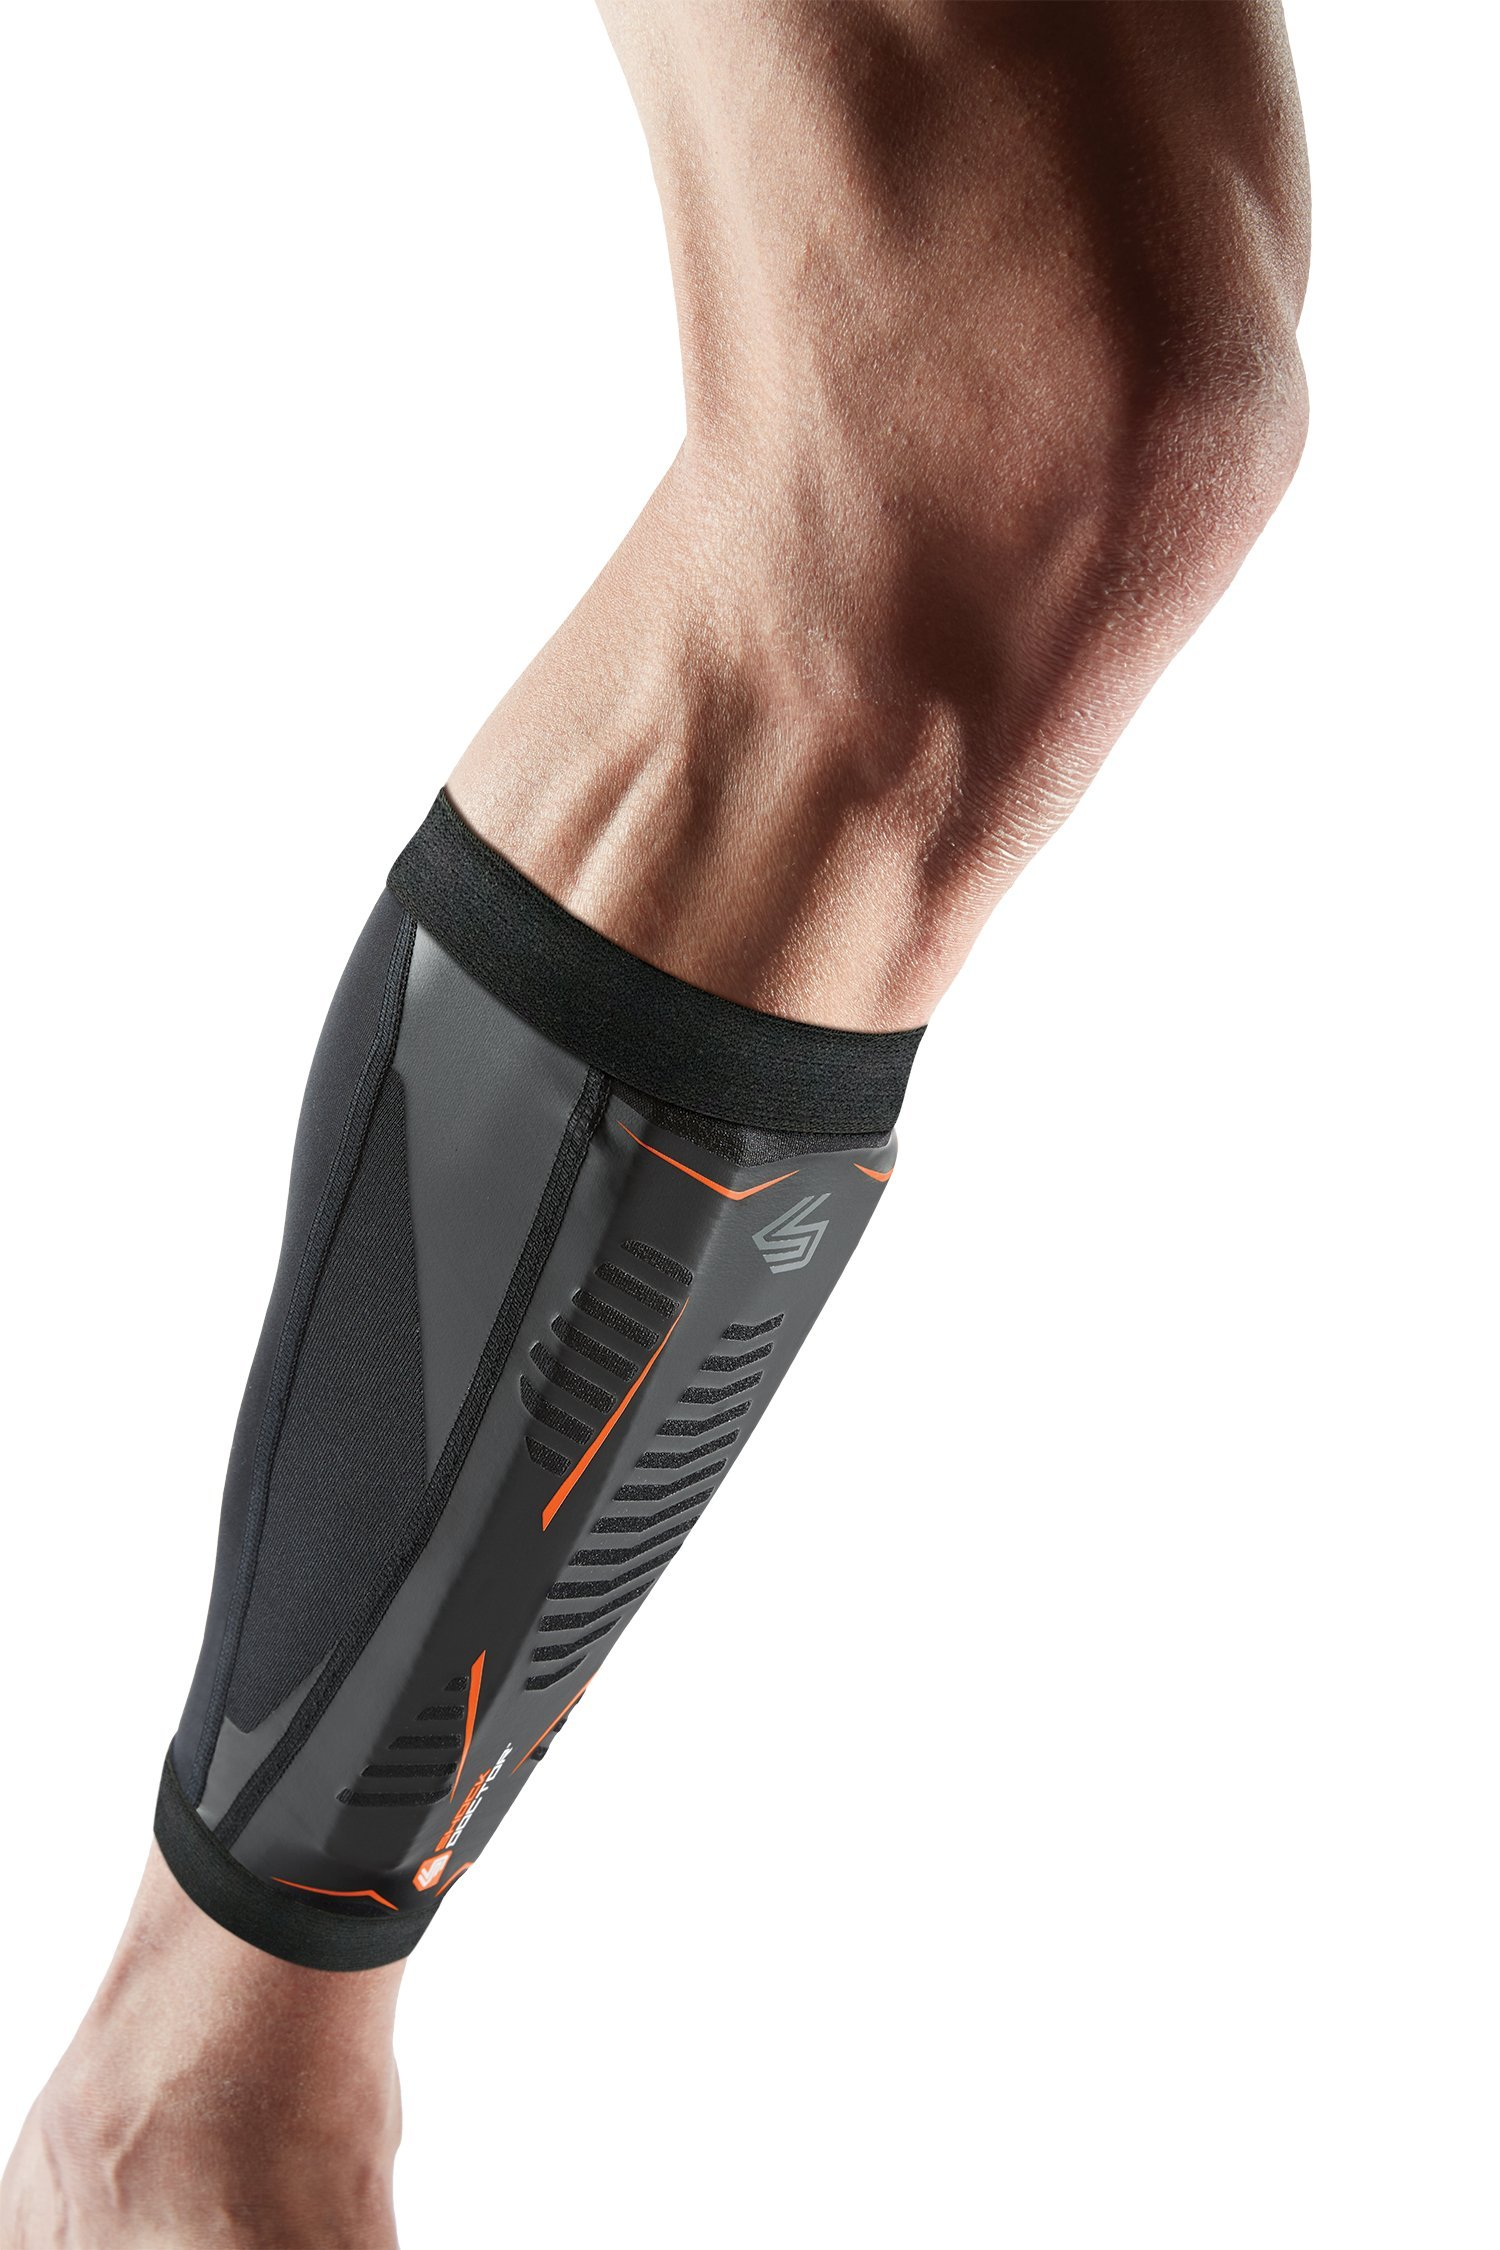 Shock Doctor Runners Therapy Shin Splint Sleeve, Black, Small